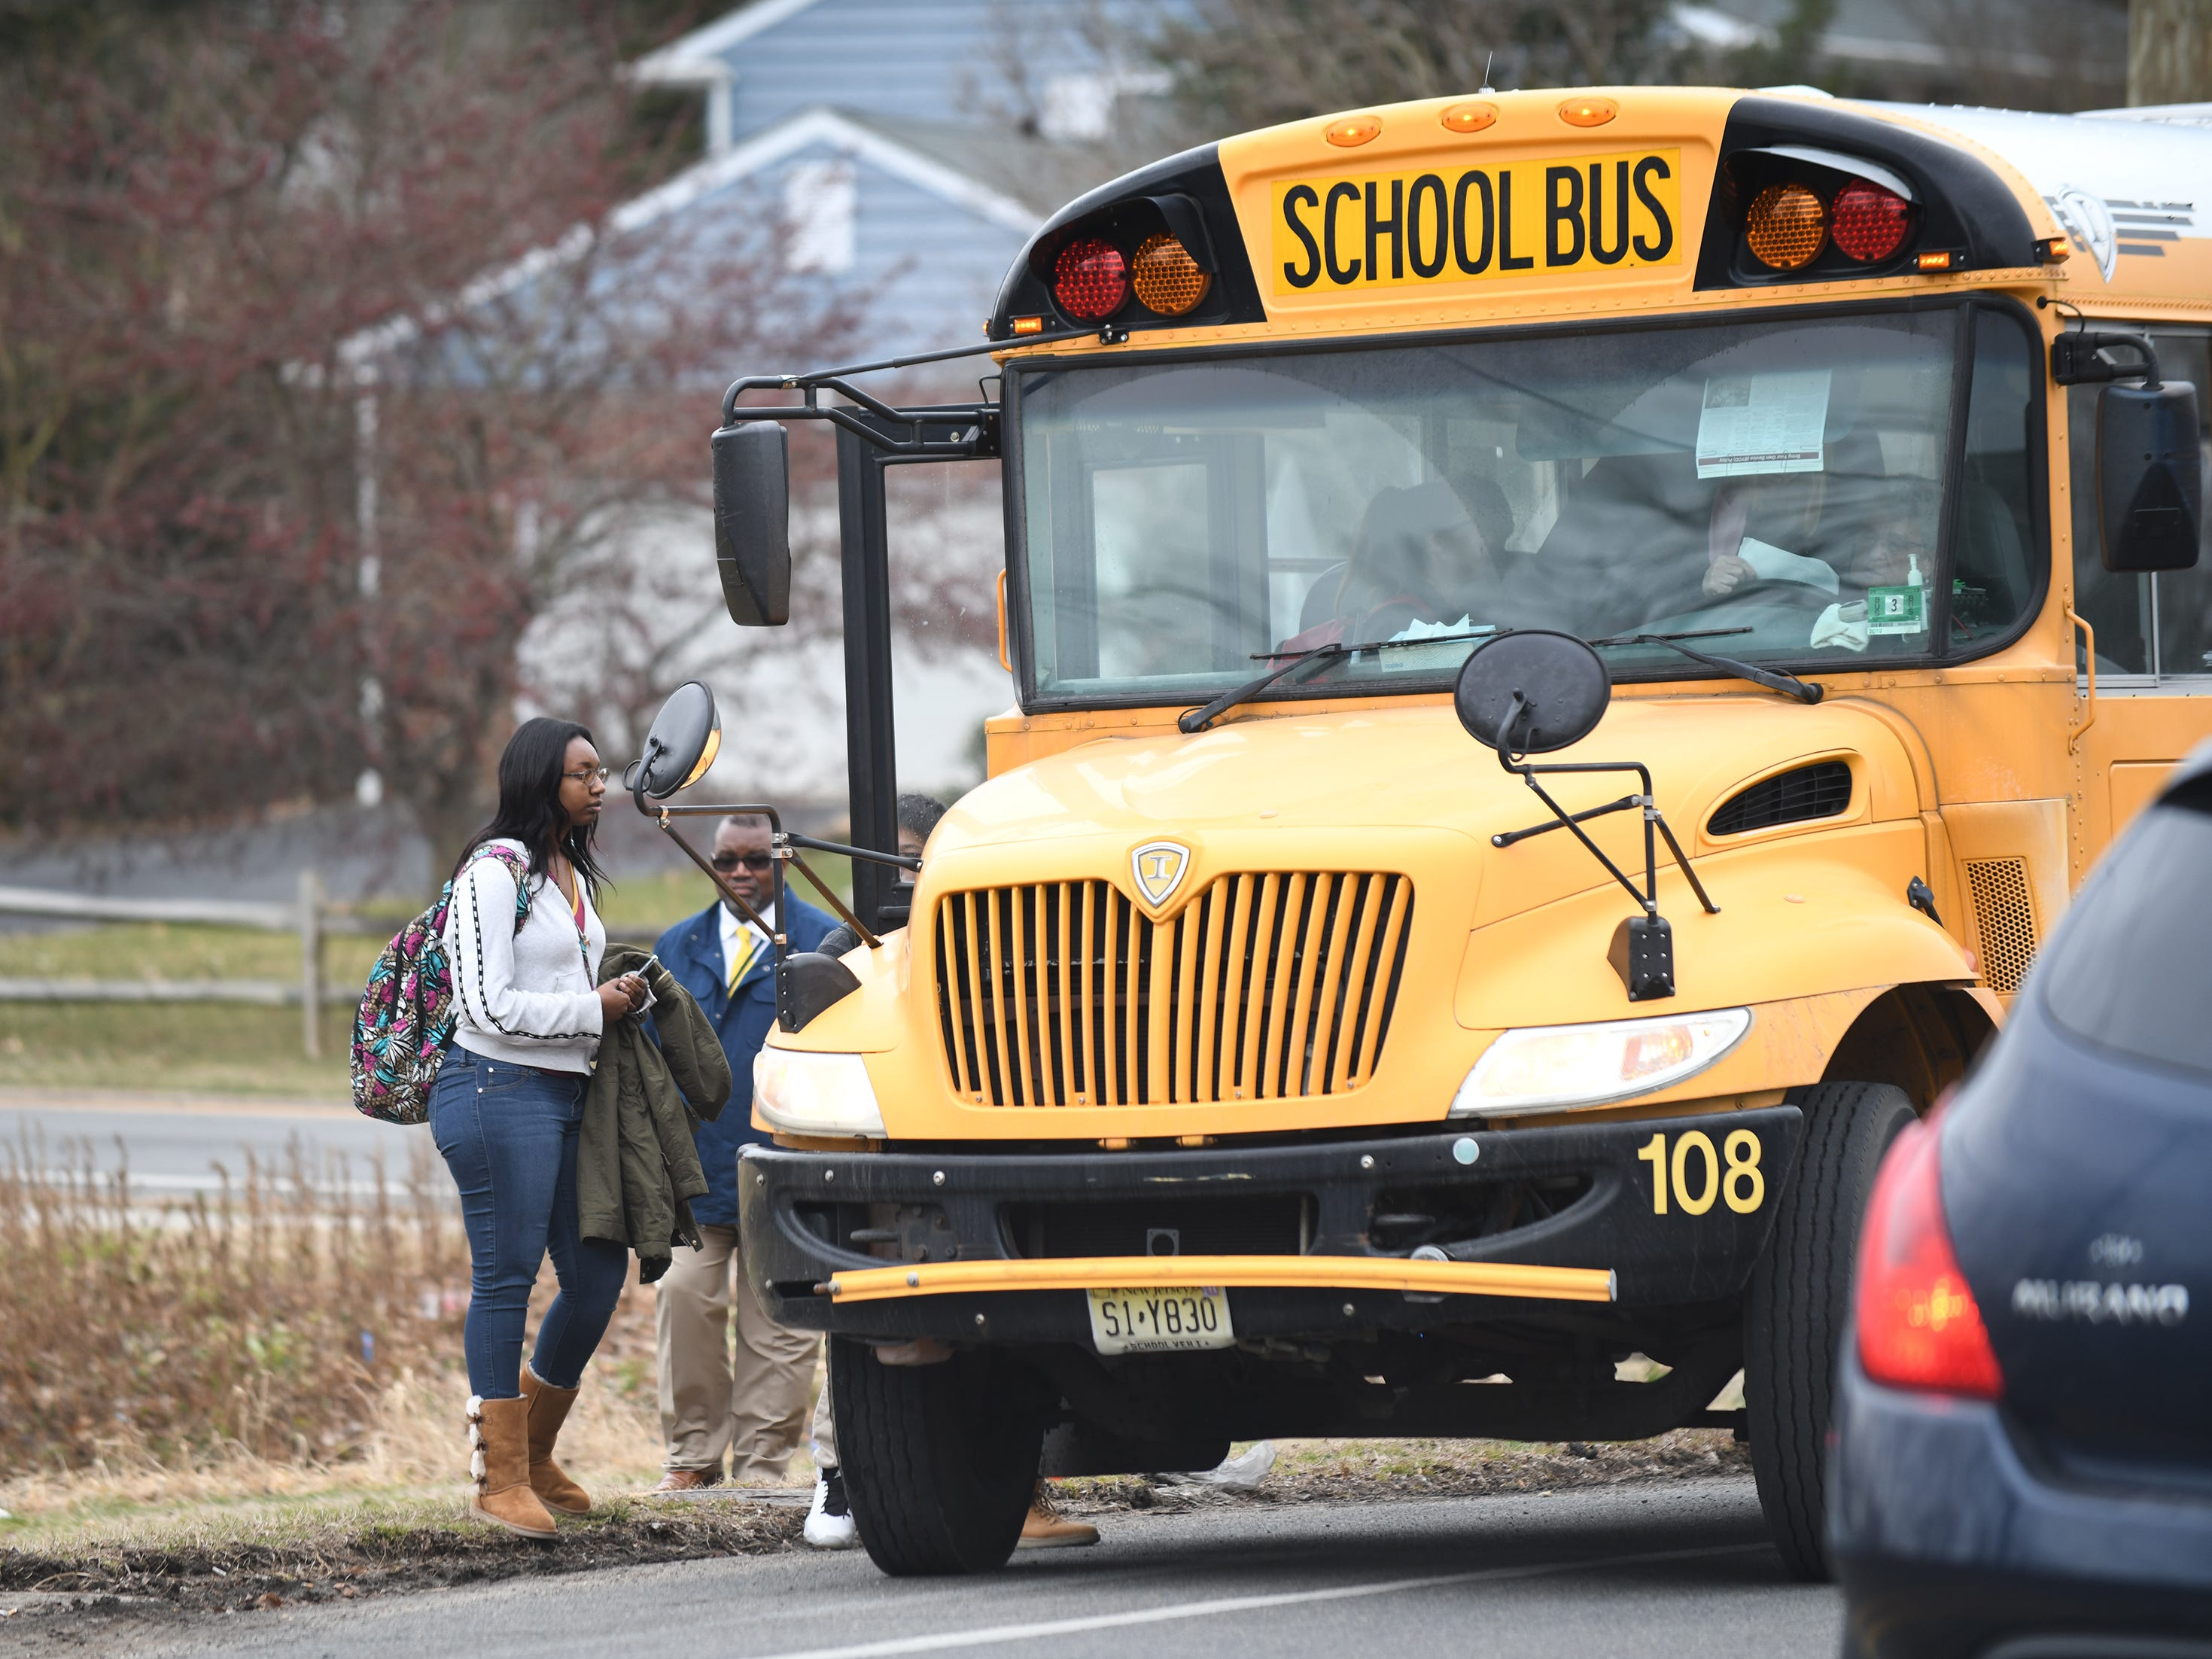 Students board a second bus after their first bus was involved in a collision at the corner of Landis and Brewster in Vineland on Wednesday, Feb. 6, 2019.